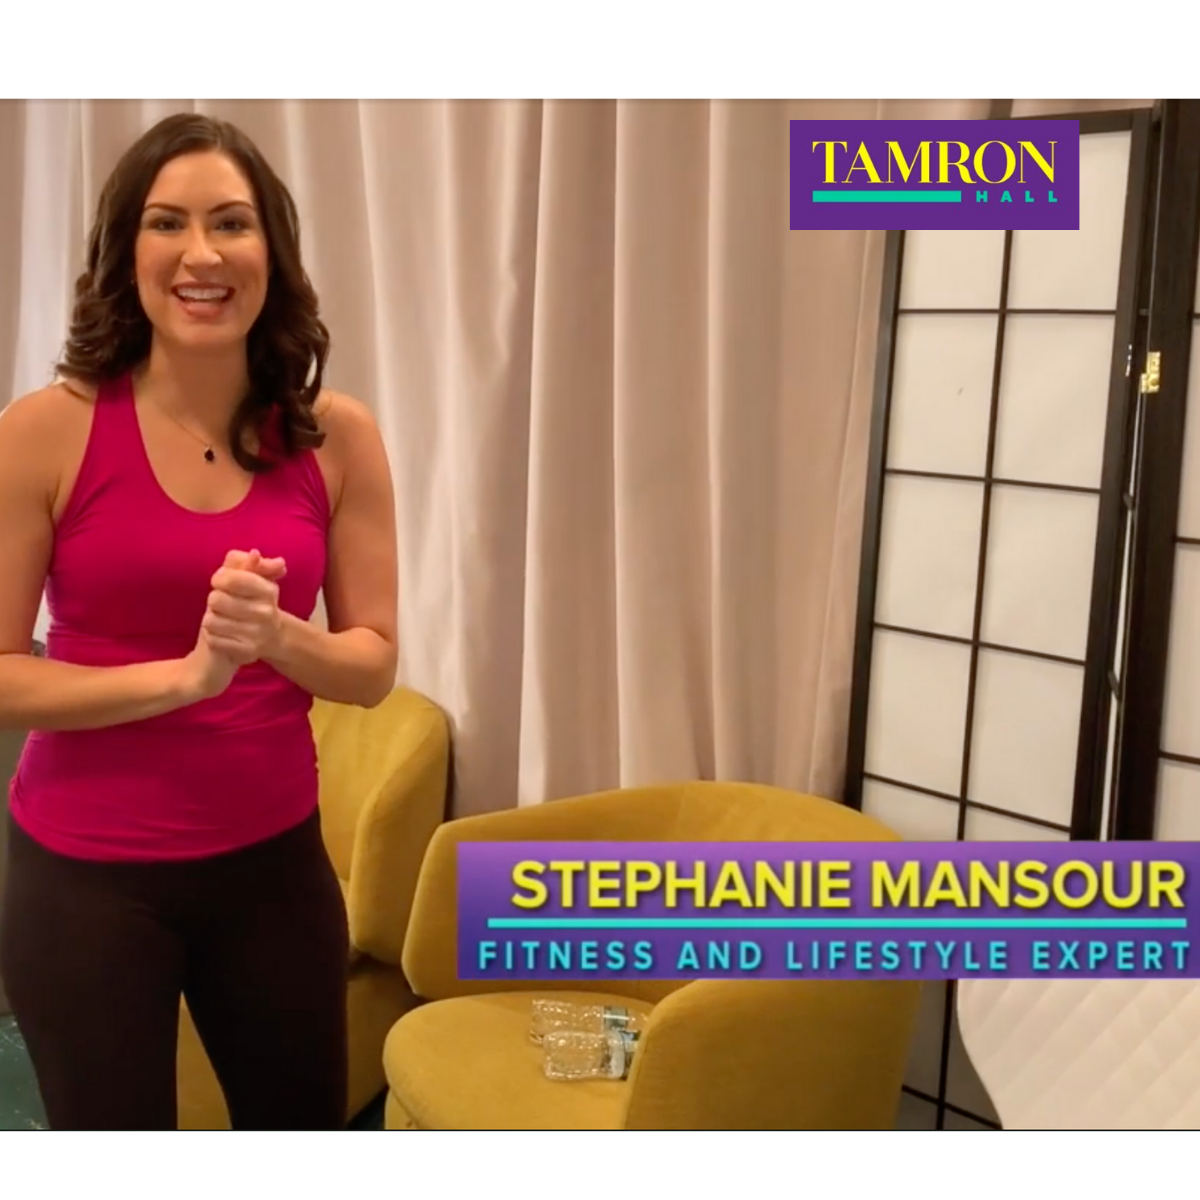 Xoxo,  -Steph  As aprivate weight loss coachand a private fitness coach for women, I specialize in helping successful women lose weight.  If you're looking for a life coach in Chicago and beyond, you've come to the right place! As a Certified Personal Trainer for Women and Certified Professional Life Coach in Chicago, I work with successful women across the country.  Here are a few more things that I do as being a weight loss consultant in Chicago: Weight Loss Nutrition (we work with a Doctor of Nutrition to assess all of our private weight loss clients), Health & Fitness Training in Chicago, and Fitness Training in Chicago. In addition, I do Corporate Wellness Training in Chicago, and I'm a Fitness Consultant in Chicago. If you're looking for a Health Trainer in Chicago, you've come to the right place! In addition, I am a Nutrition Expert in Chicago, and a Women's Weight Loss Coach in Chicago and beyond!  Even though I am based in Chicago, I work with women across the country! For more inspiration, join our FREE 21 Day Challenge atstepitupchallenge.com